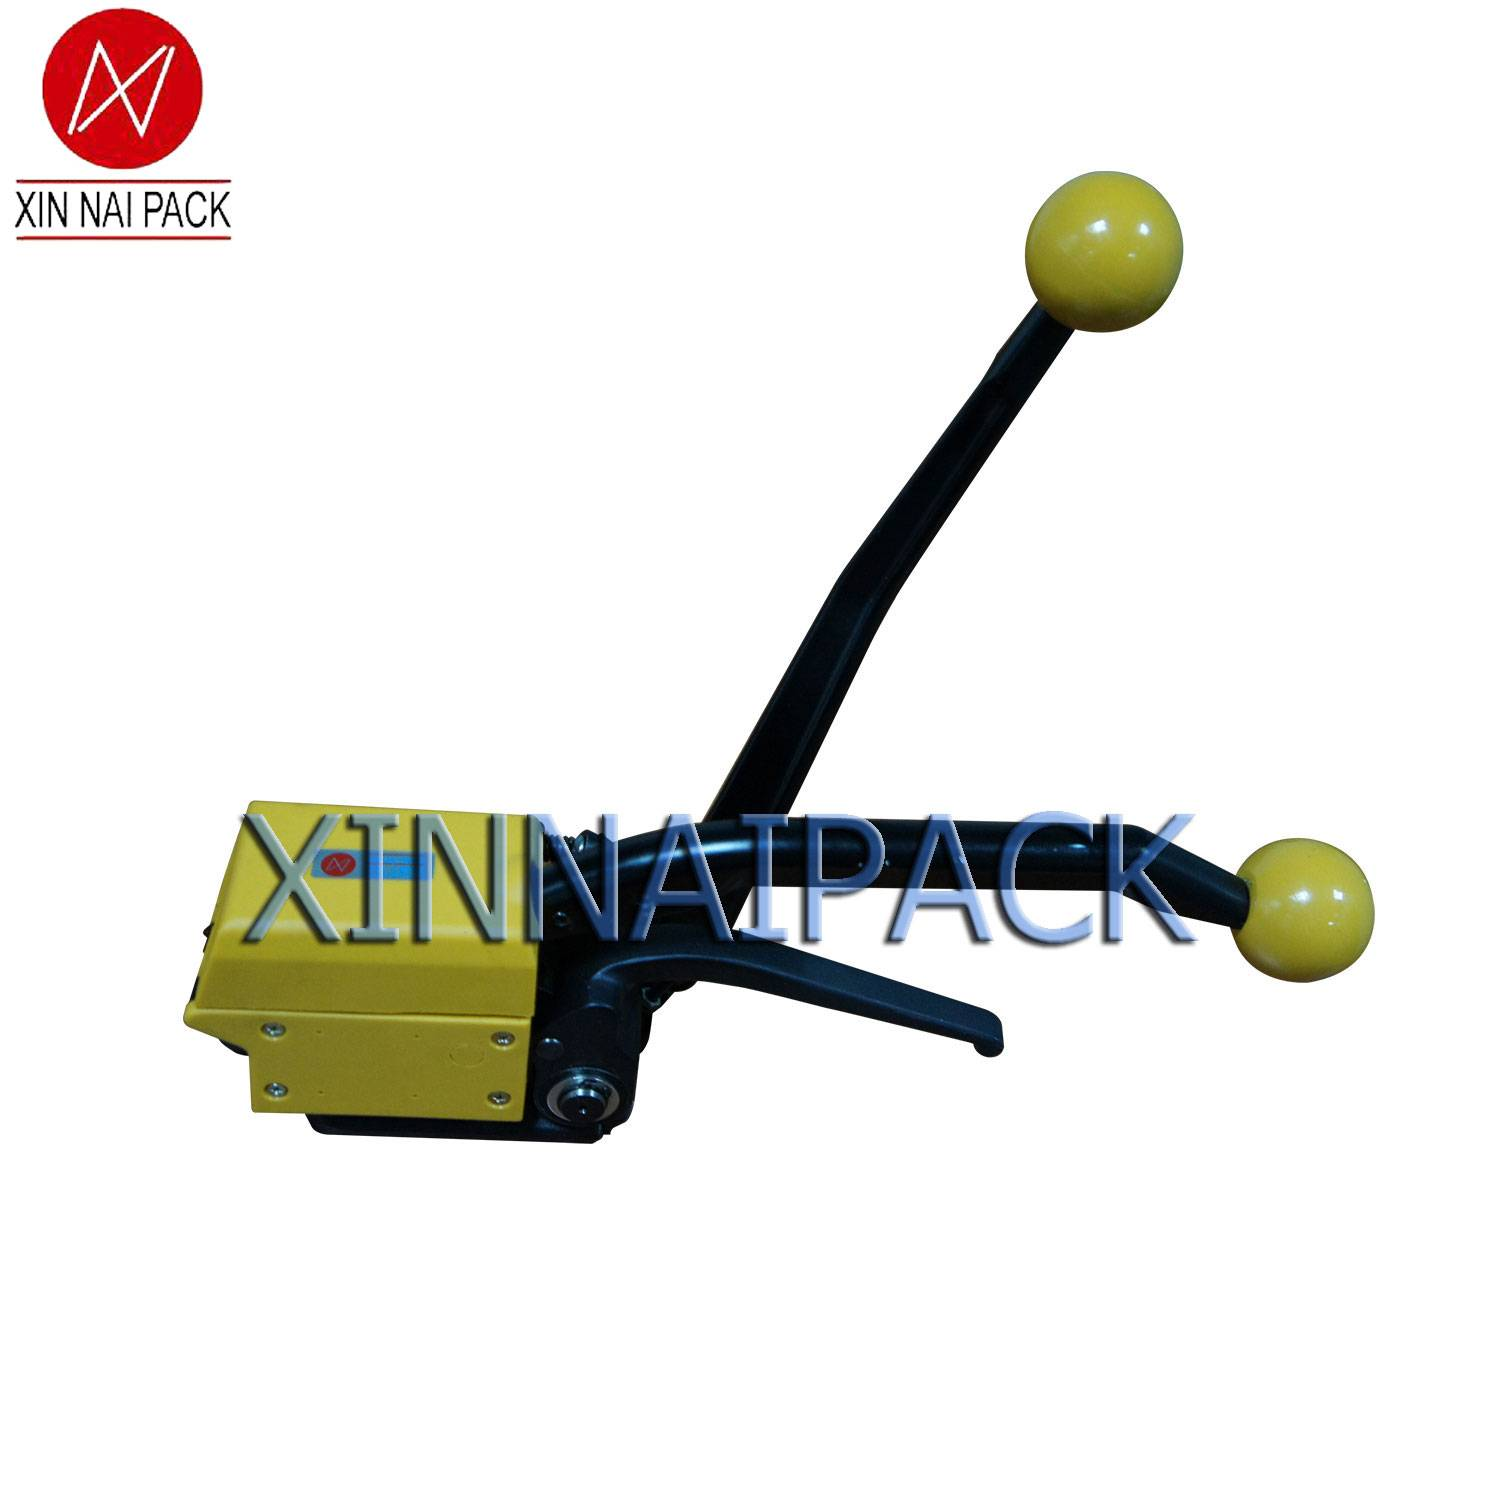 A333 free clamp steel band strapping tool